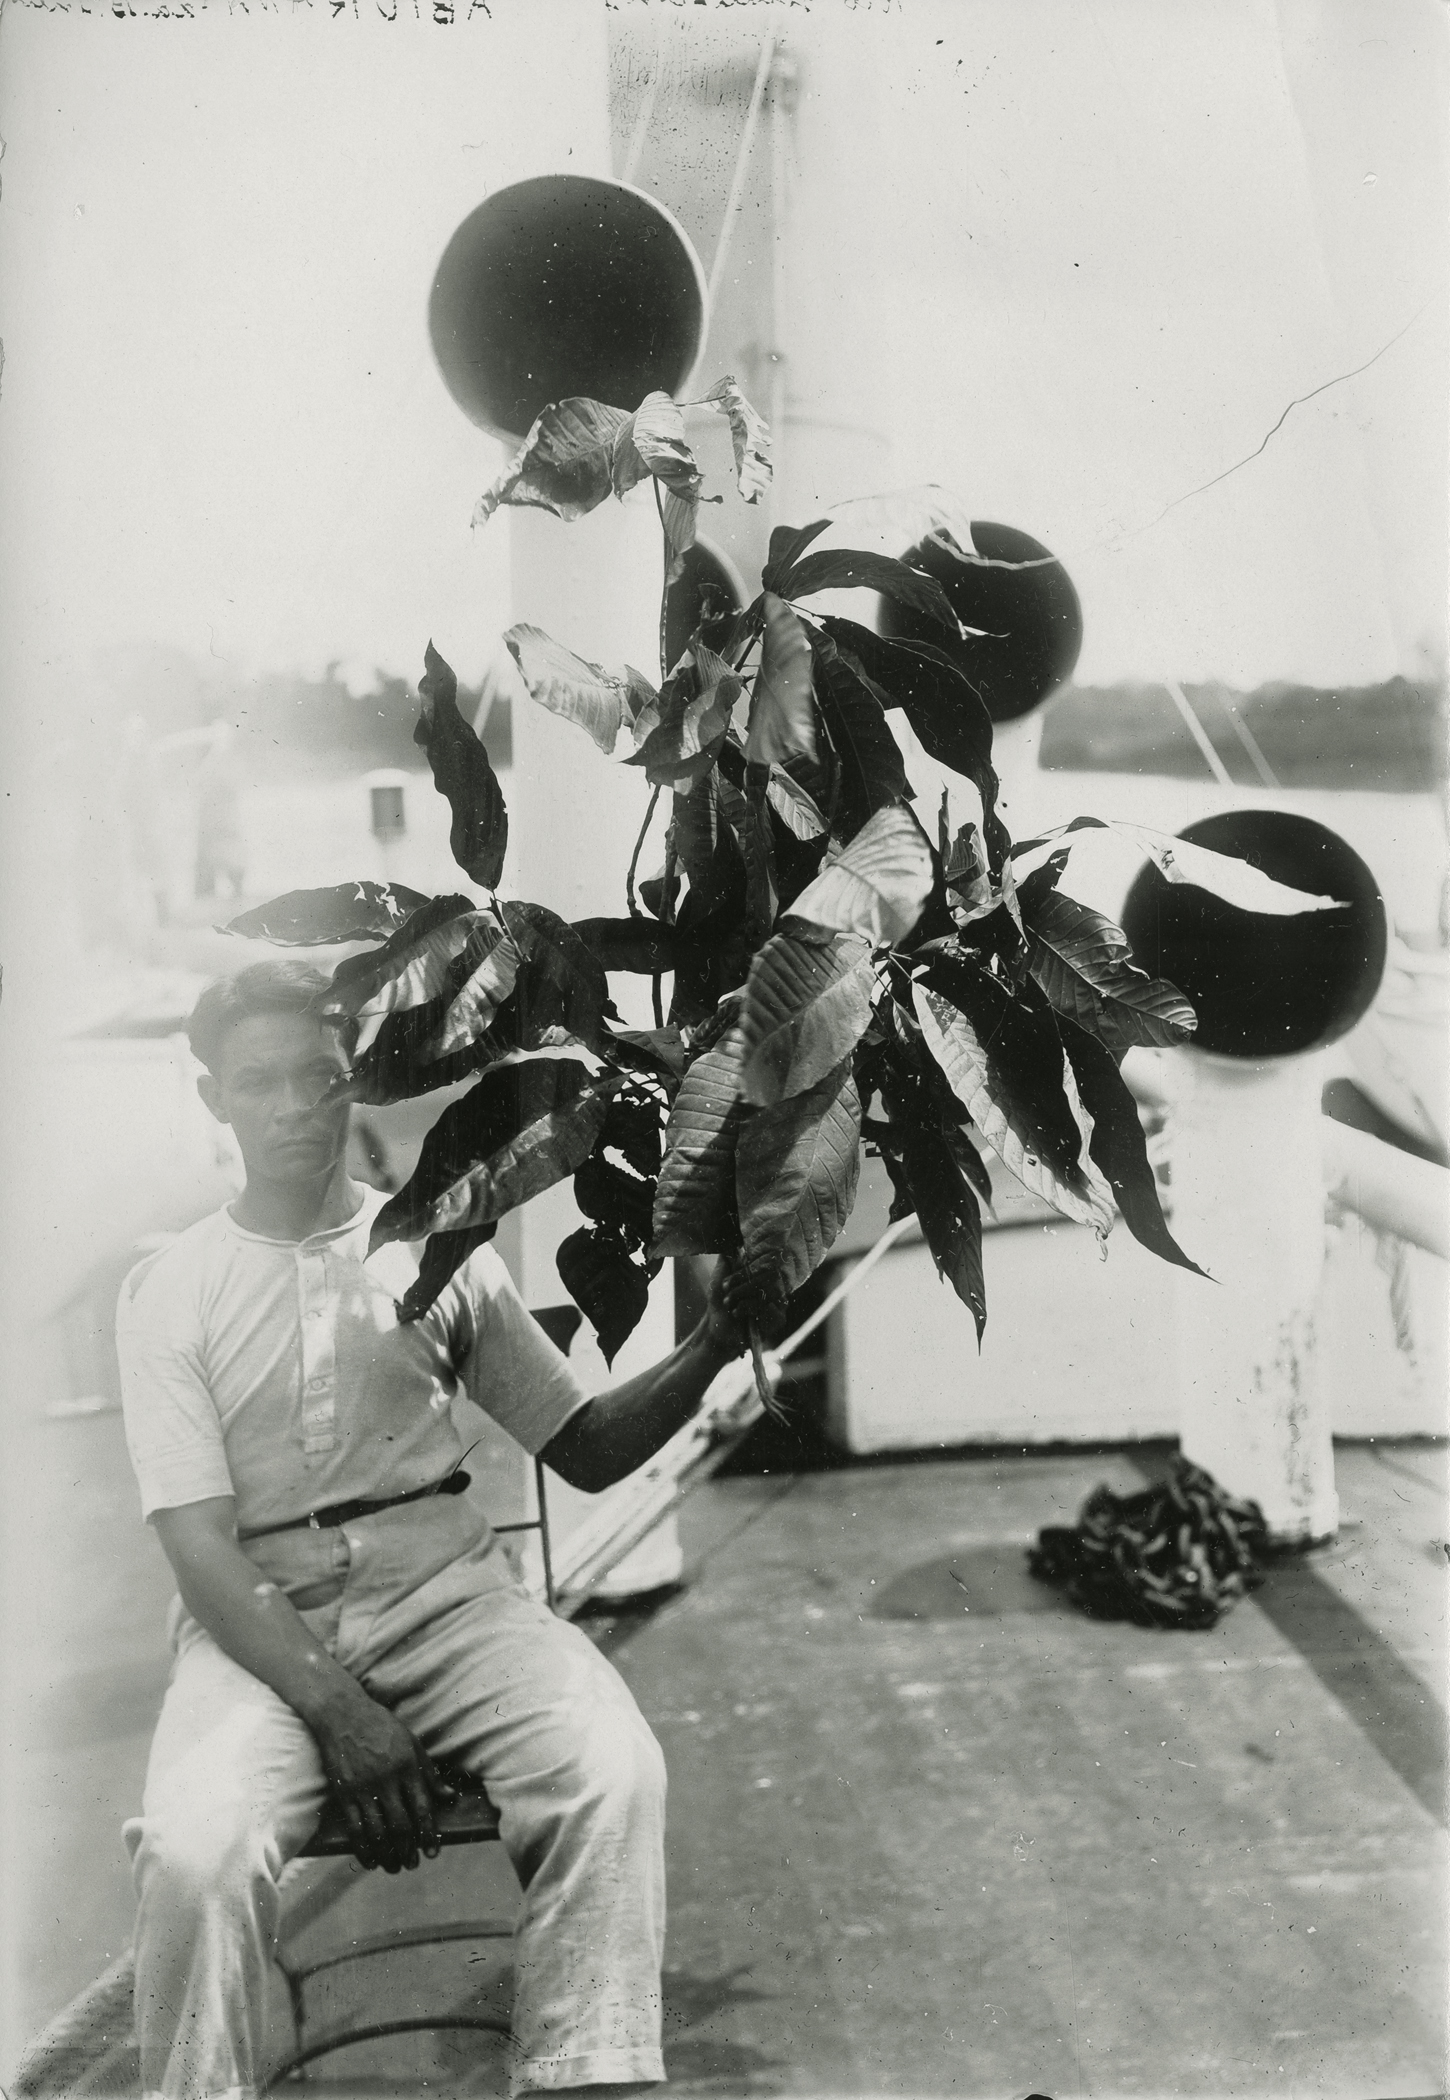 "(research image) Untitled, Amazon, Brazil, 1924. Typed on verso: ""Aburana leaves from near Rio Inauhiny on Purus River."" 4.5 x 6"" Gelatin silver fiber print. Creator: Cortland B. Manifold. Courtland Manifold Papers, Archival Services, University Libraries, The University of Akron, Akron, Ohio."